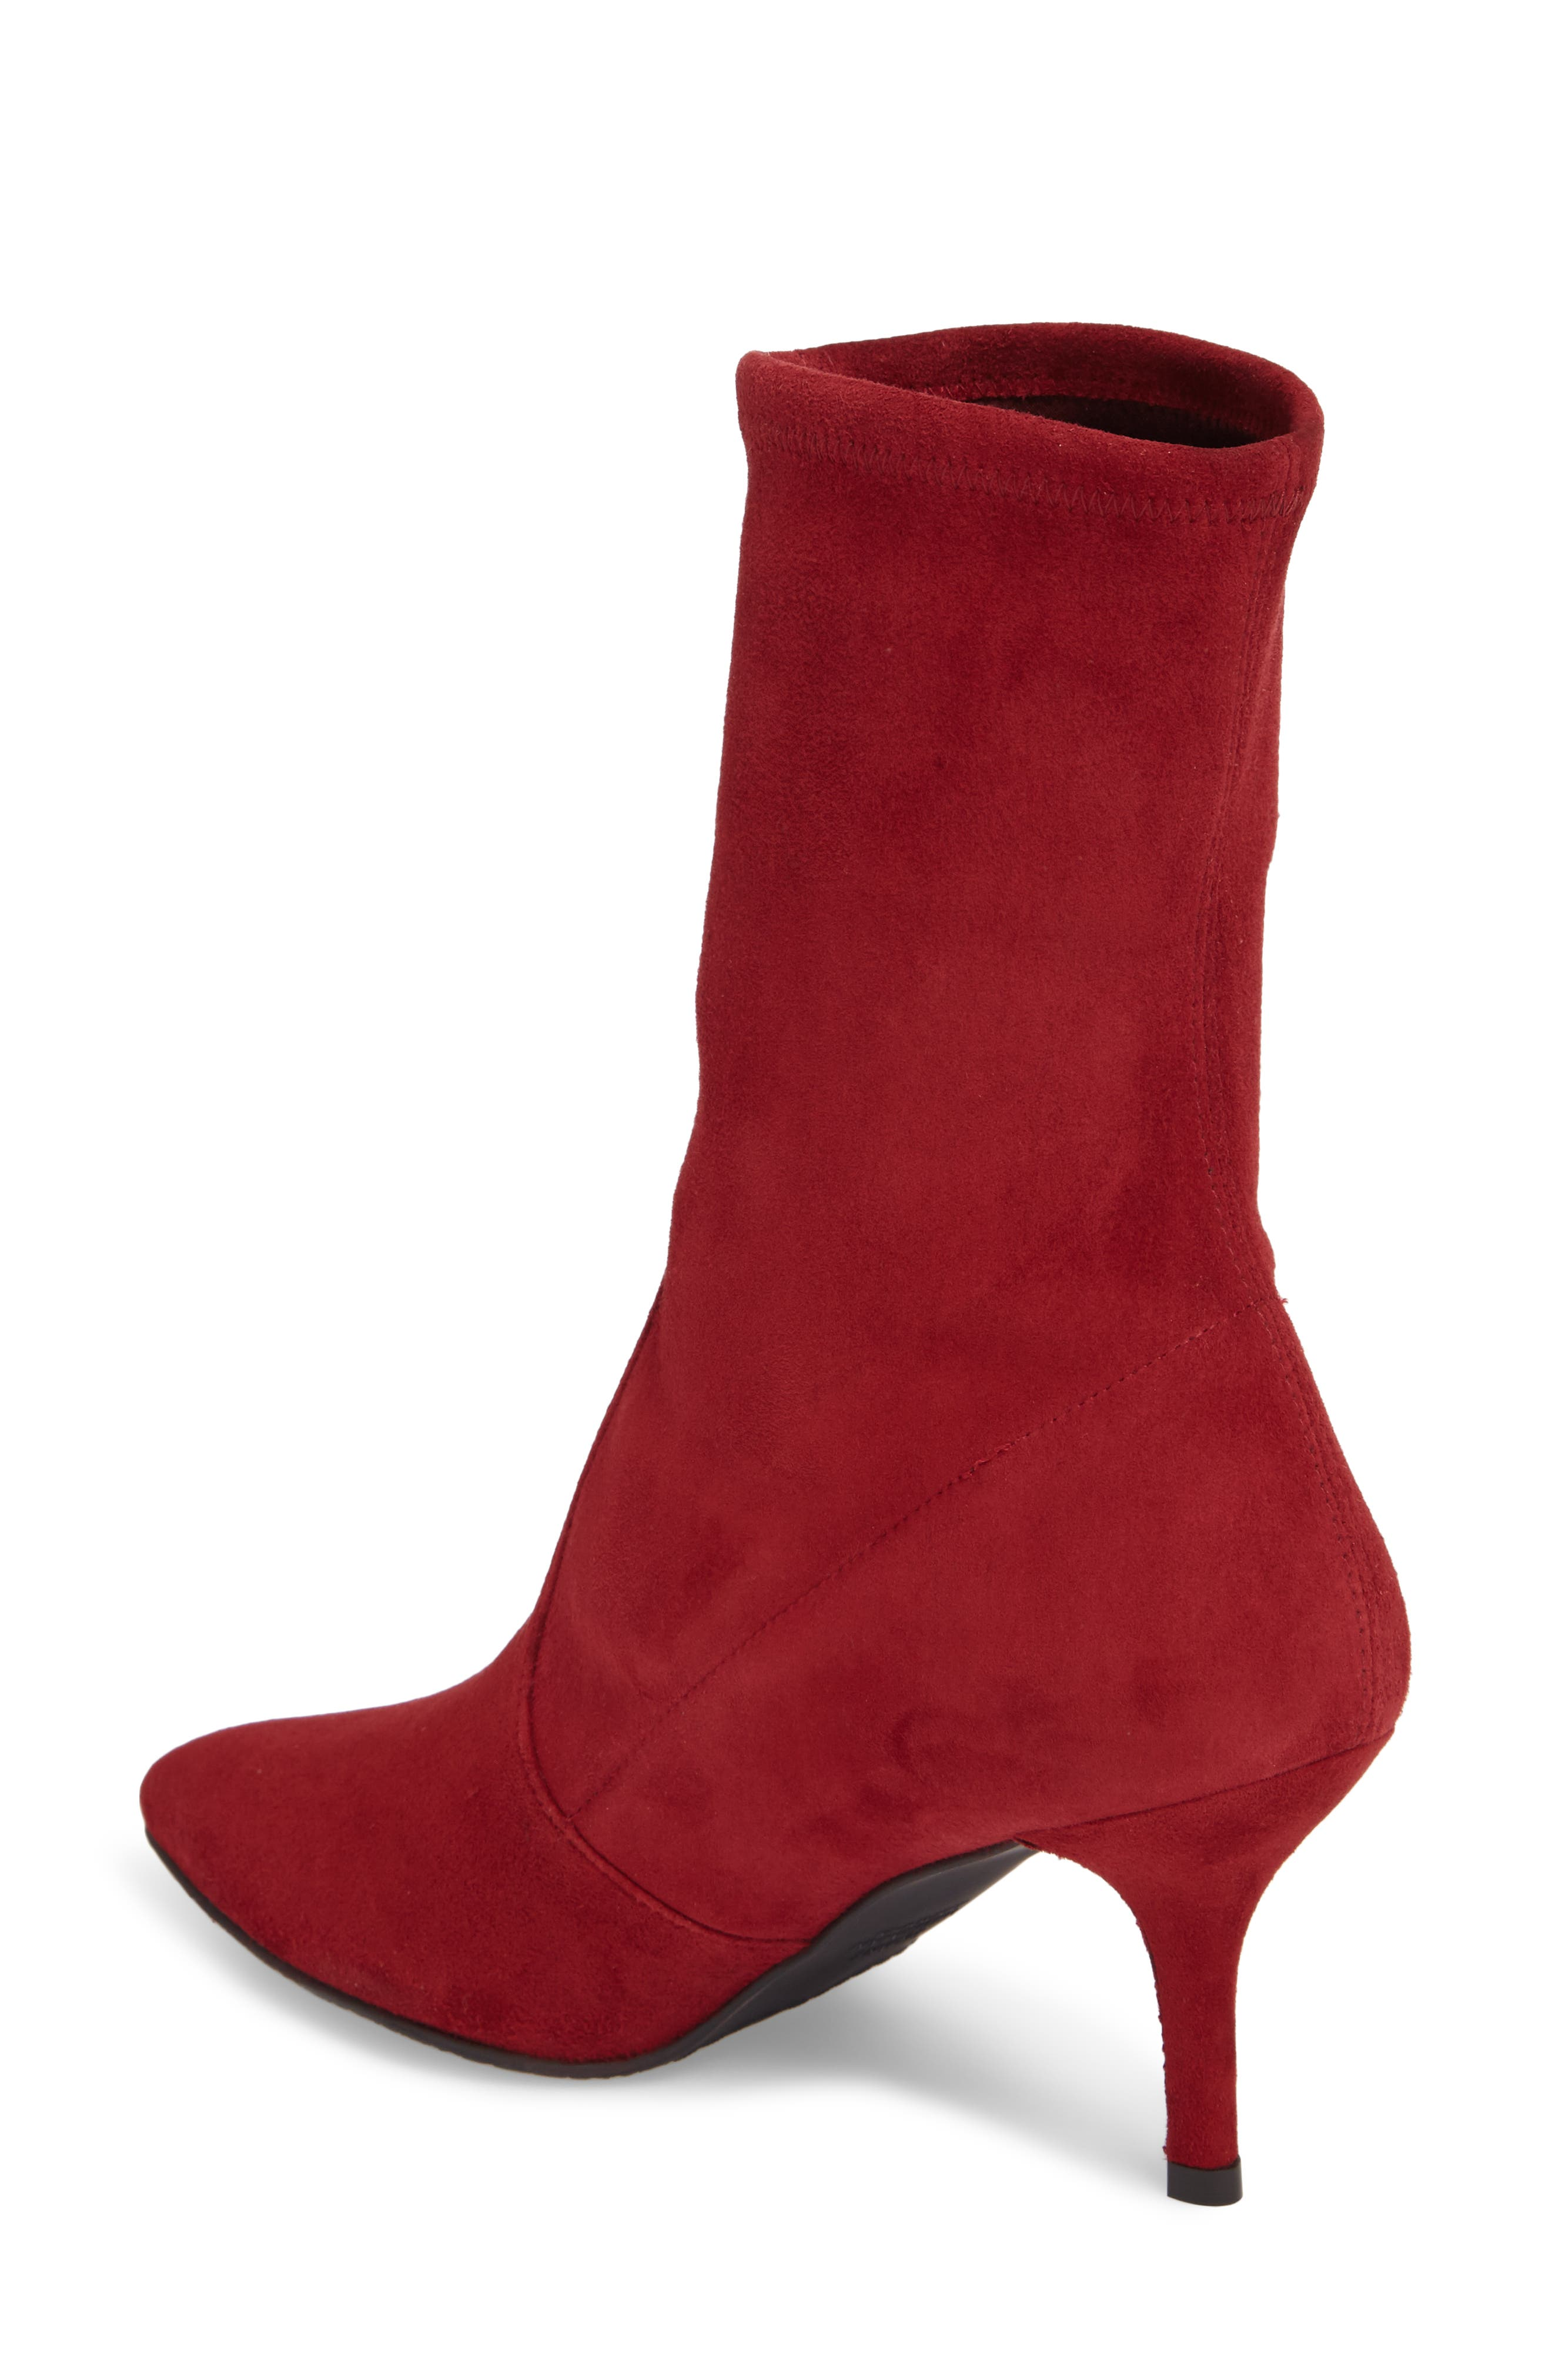 Cling Stretch Bootie,                             Alternate thumbnail 15, color,